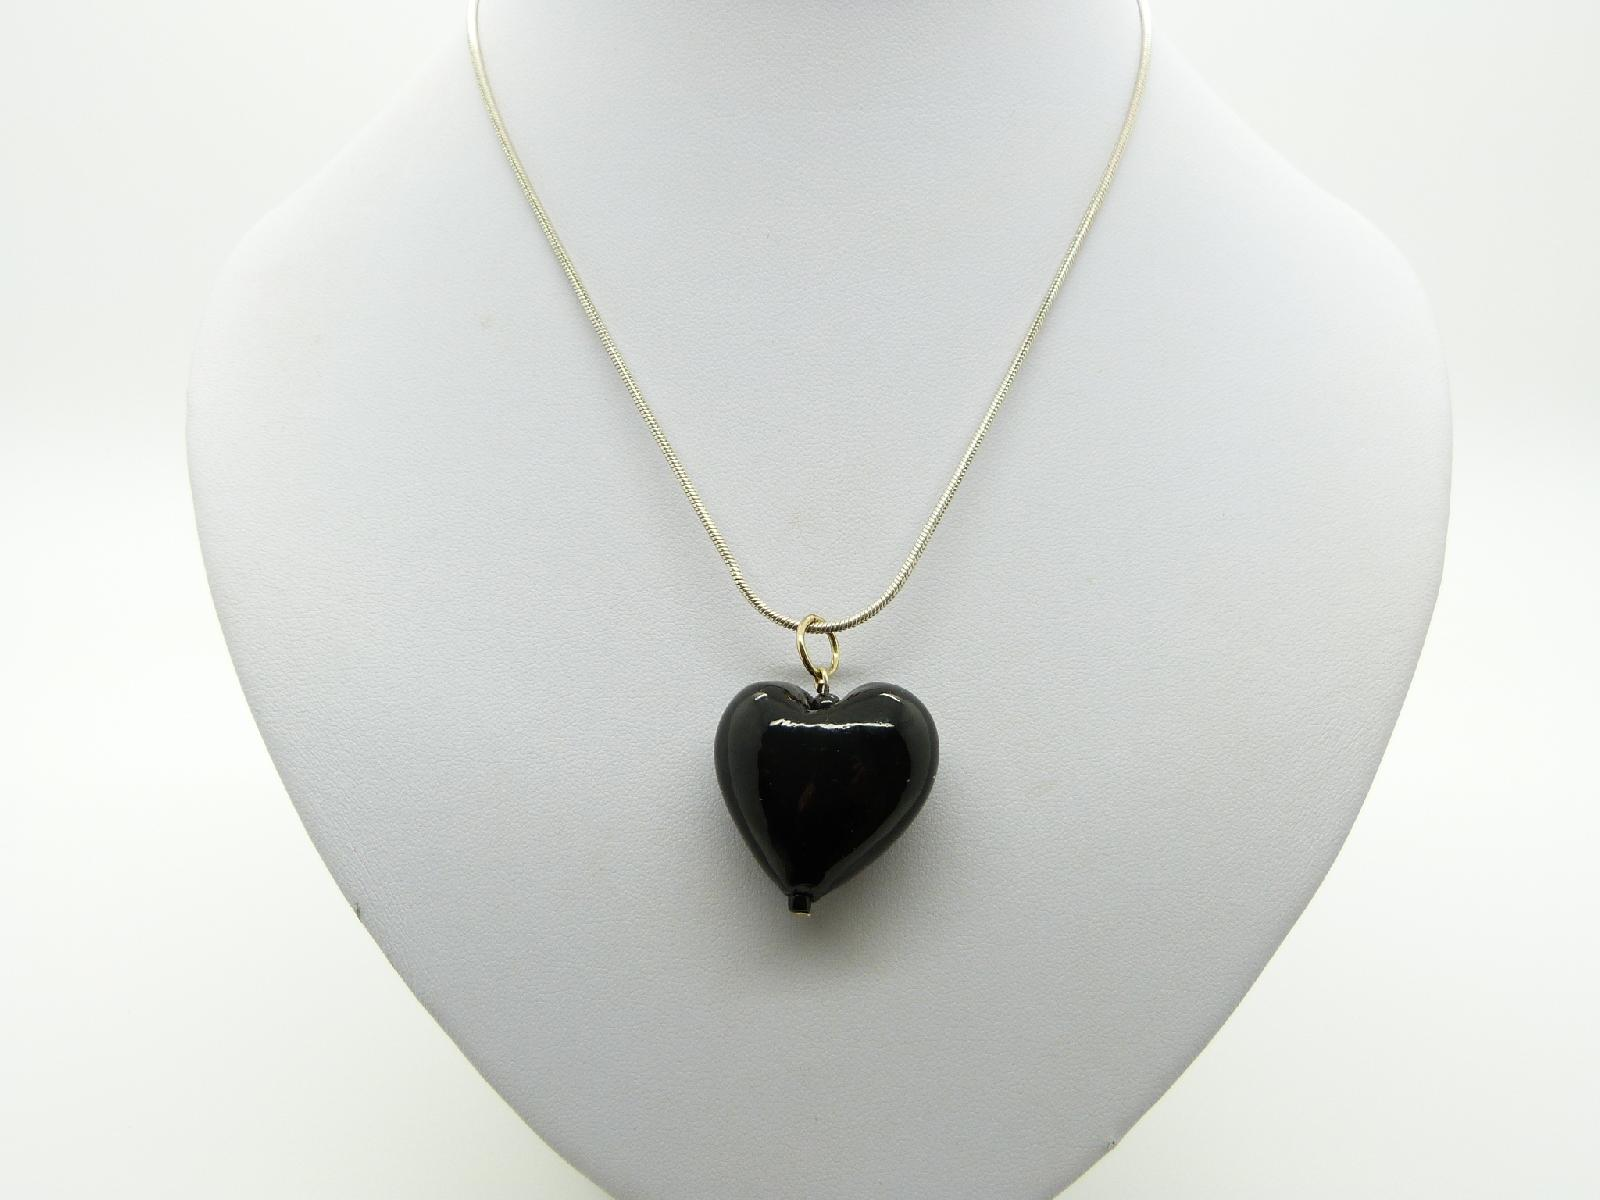 £5.00 - Pretty Black Glass Heart Pendant with Silvertone Snake Chain